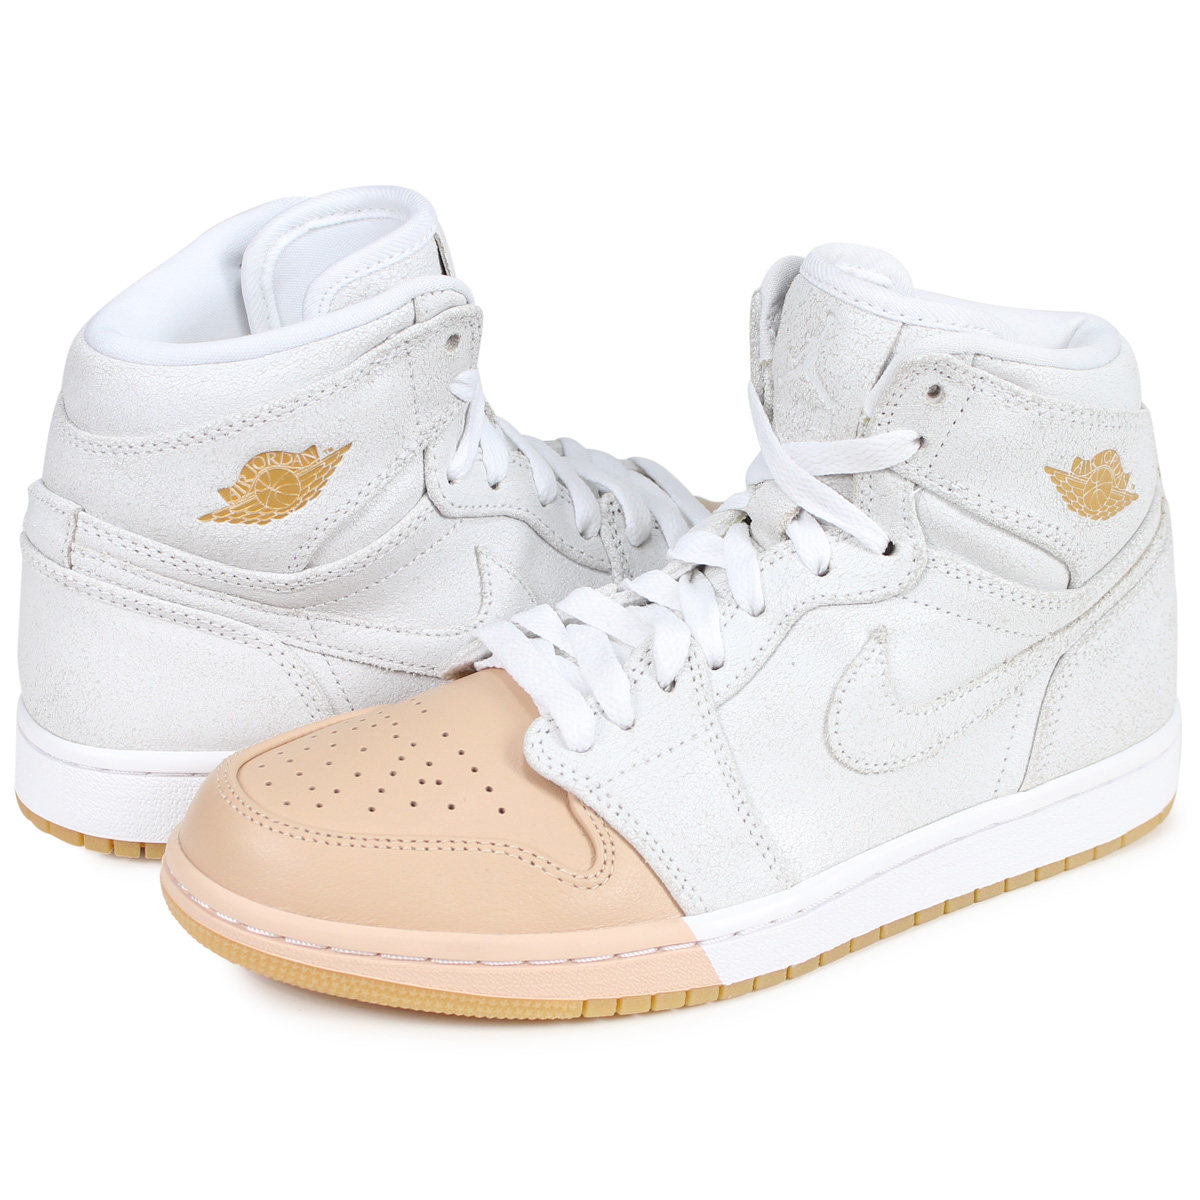 new arrival 9bc4f 2f28b Nike NIKE Air Jordan 1 nostalgic high sneakers Lady s WMNS AIR JORDAN 1  RETRO HIGH white AH7389-107  2 21 Shinnyu load   192